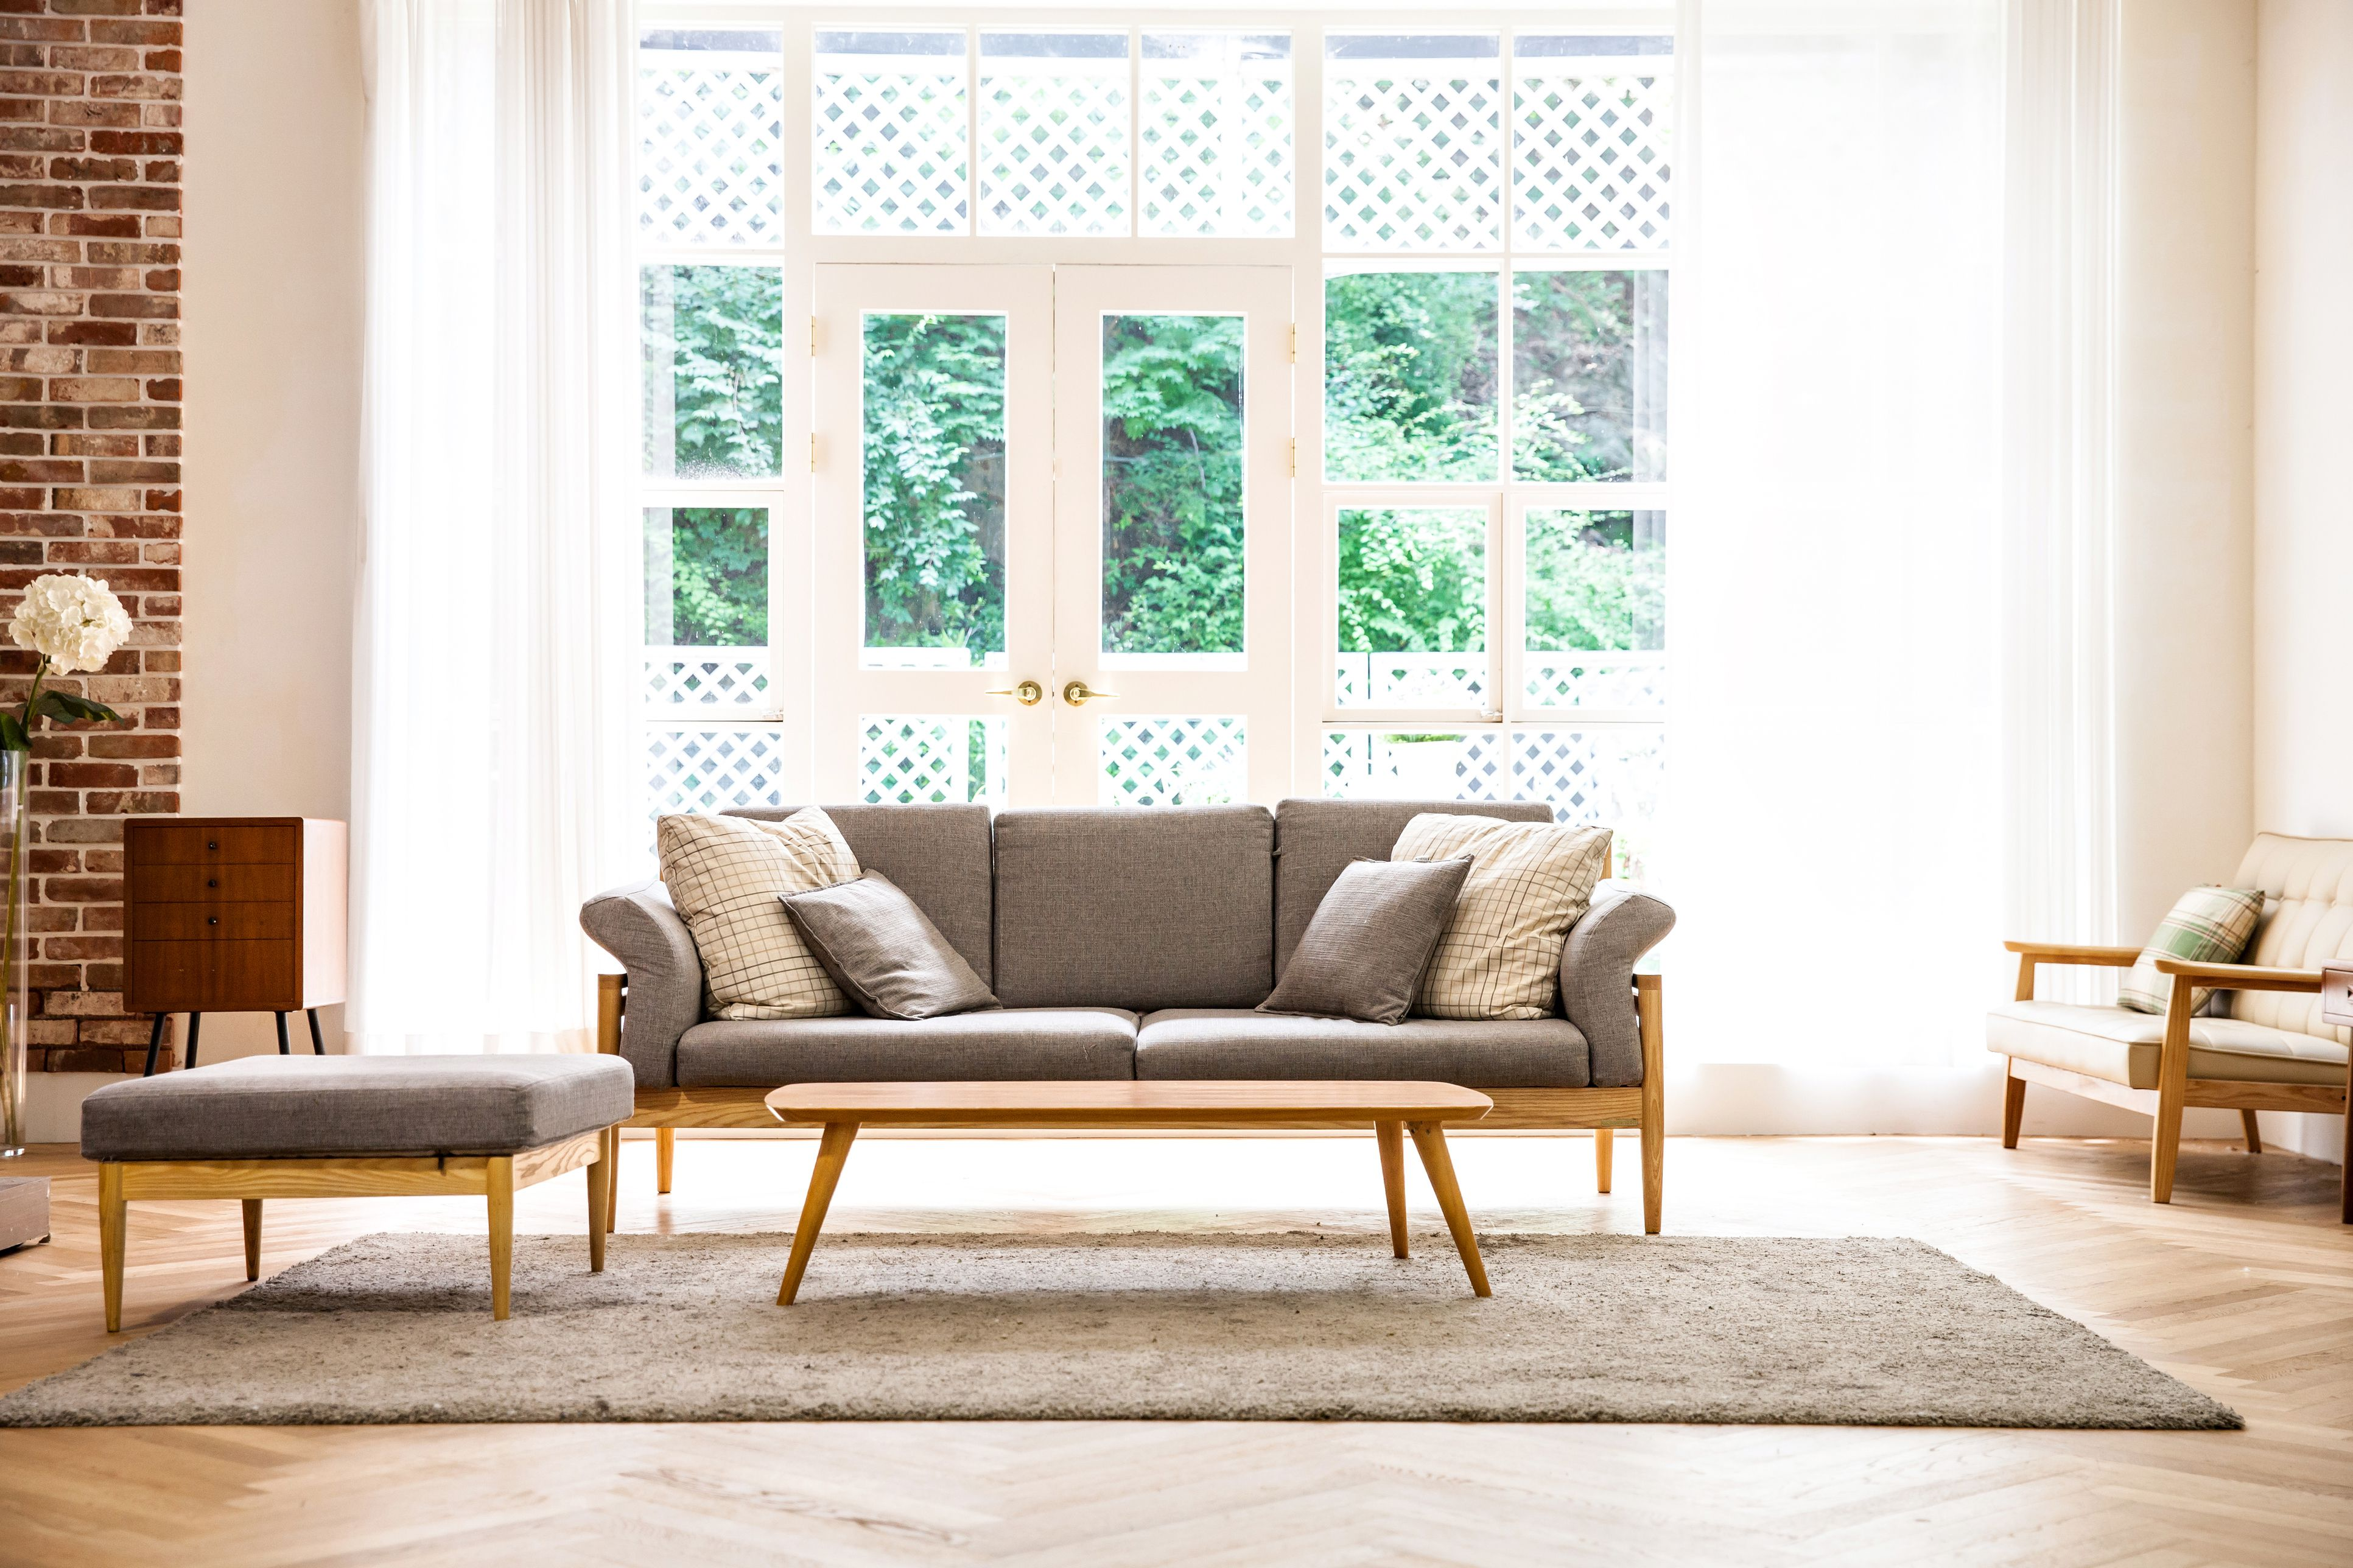 How To Use Neutral Colors In Interior Design